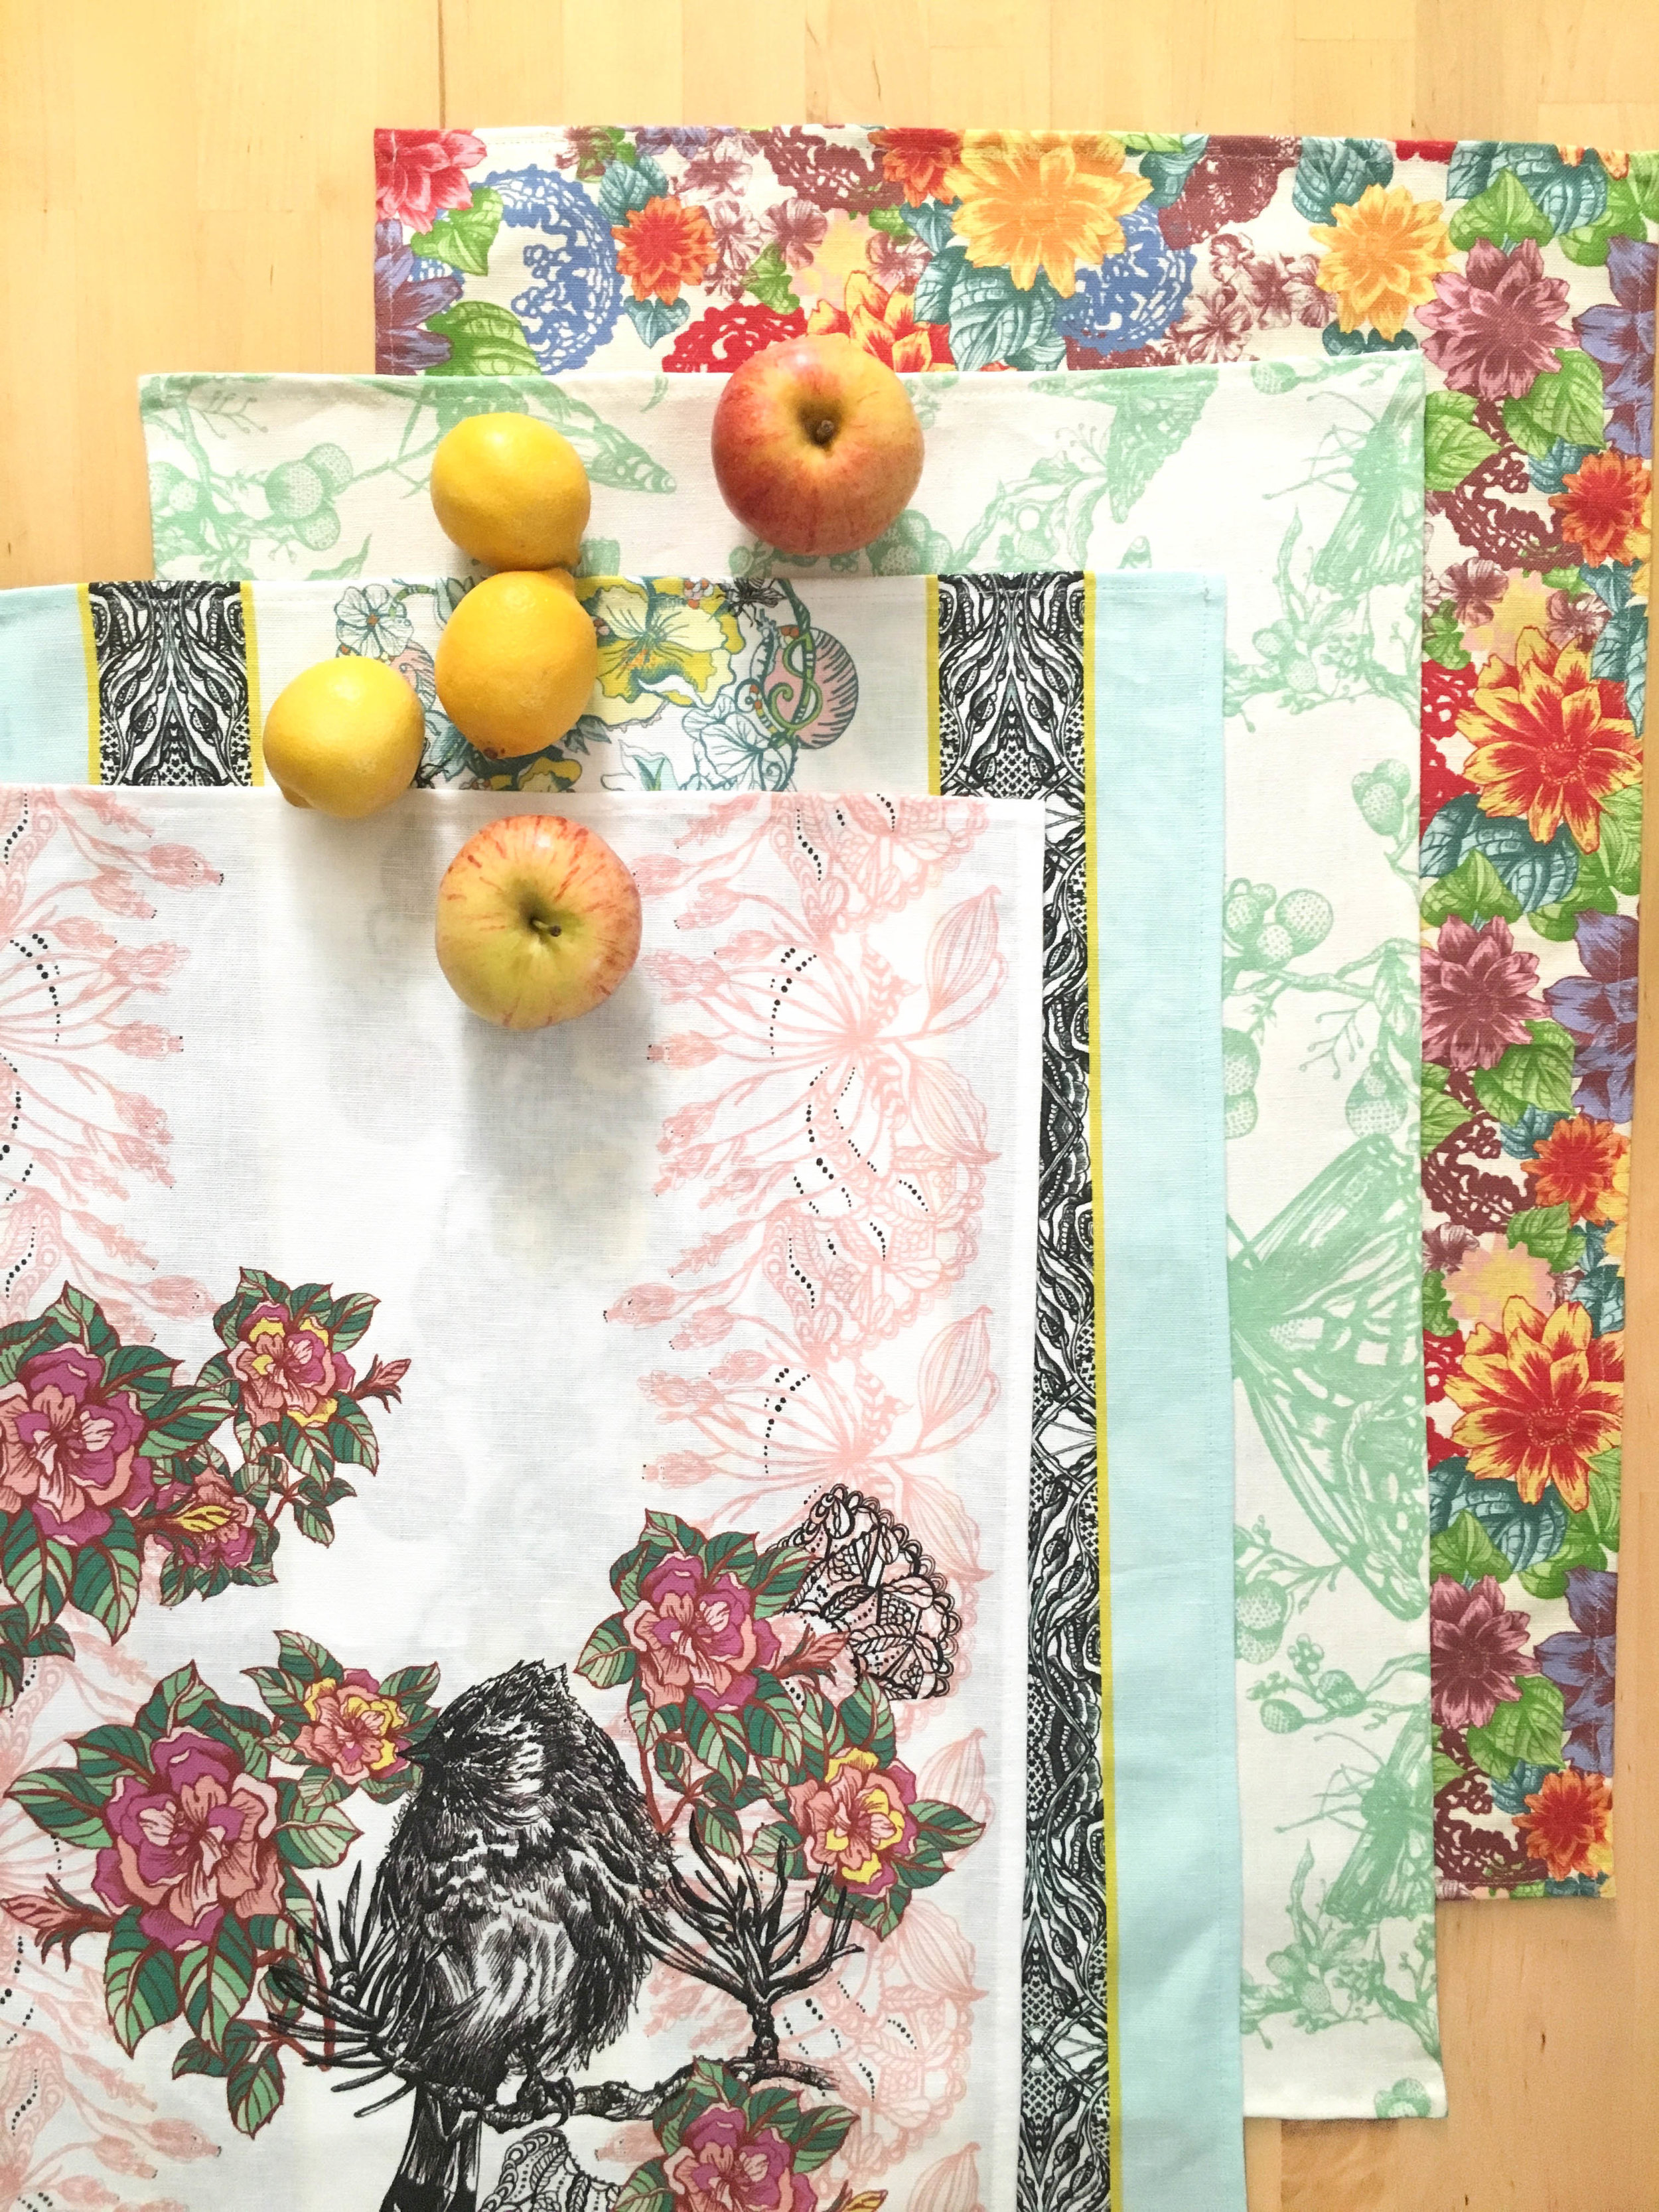 Janice Nelson Designs tea towels displayed with fruit